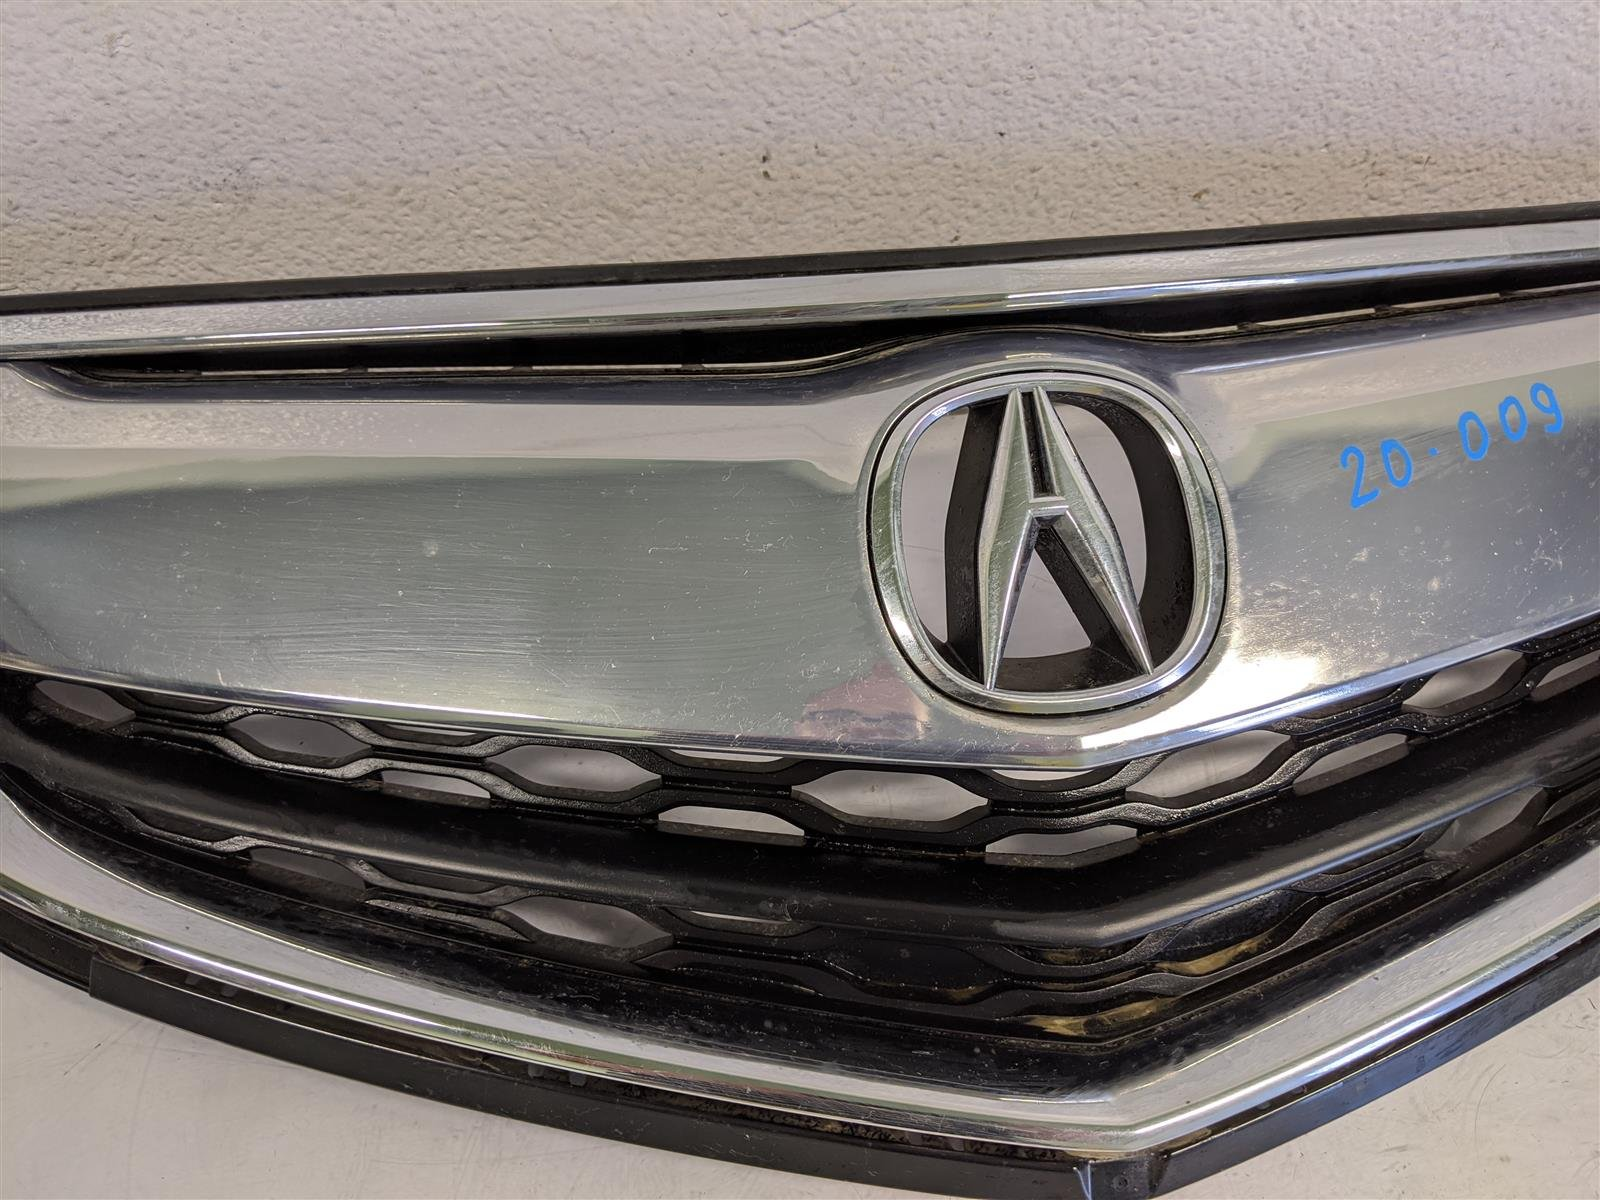 2017 Acura TLX Front Grille Assembly Replacement